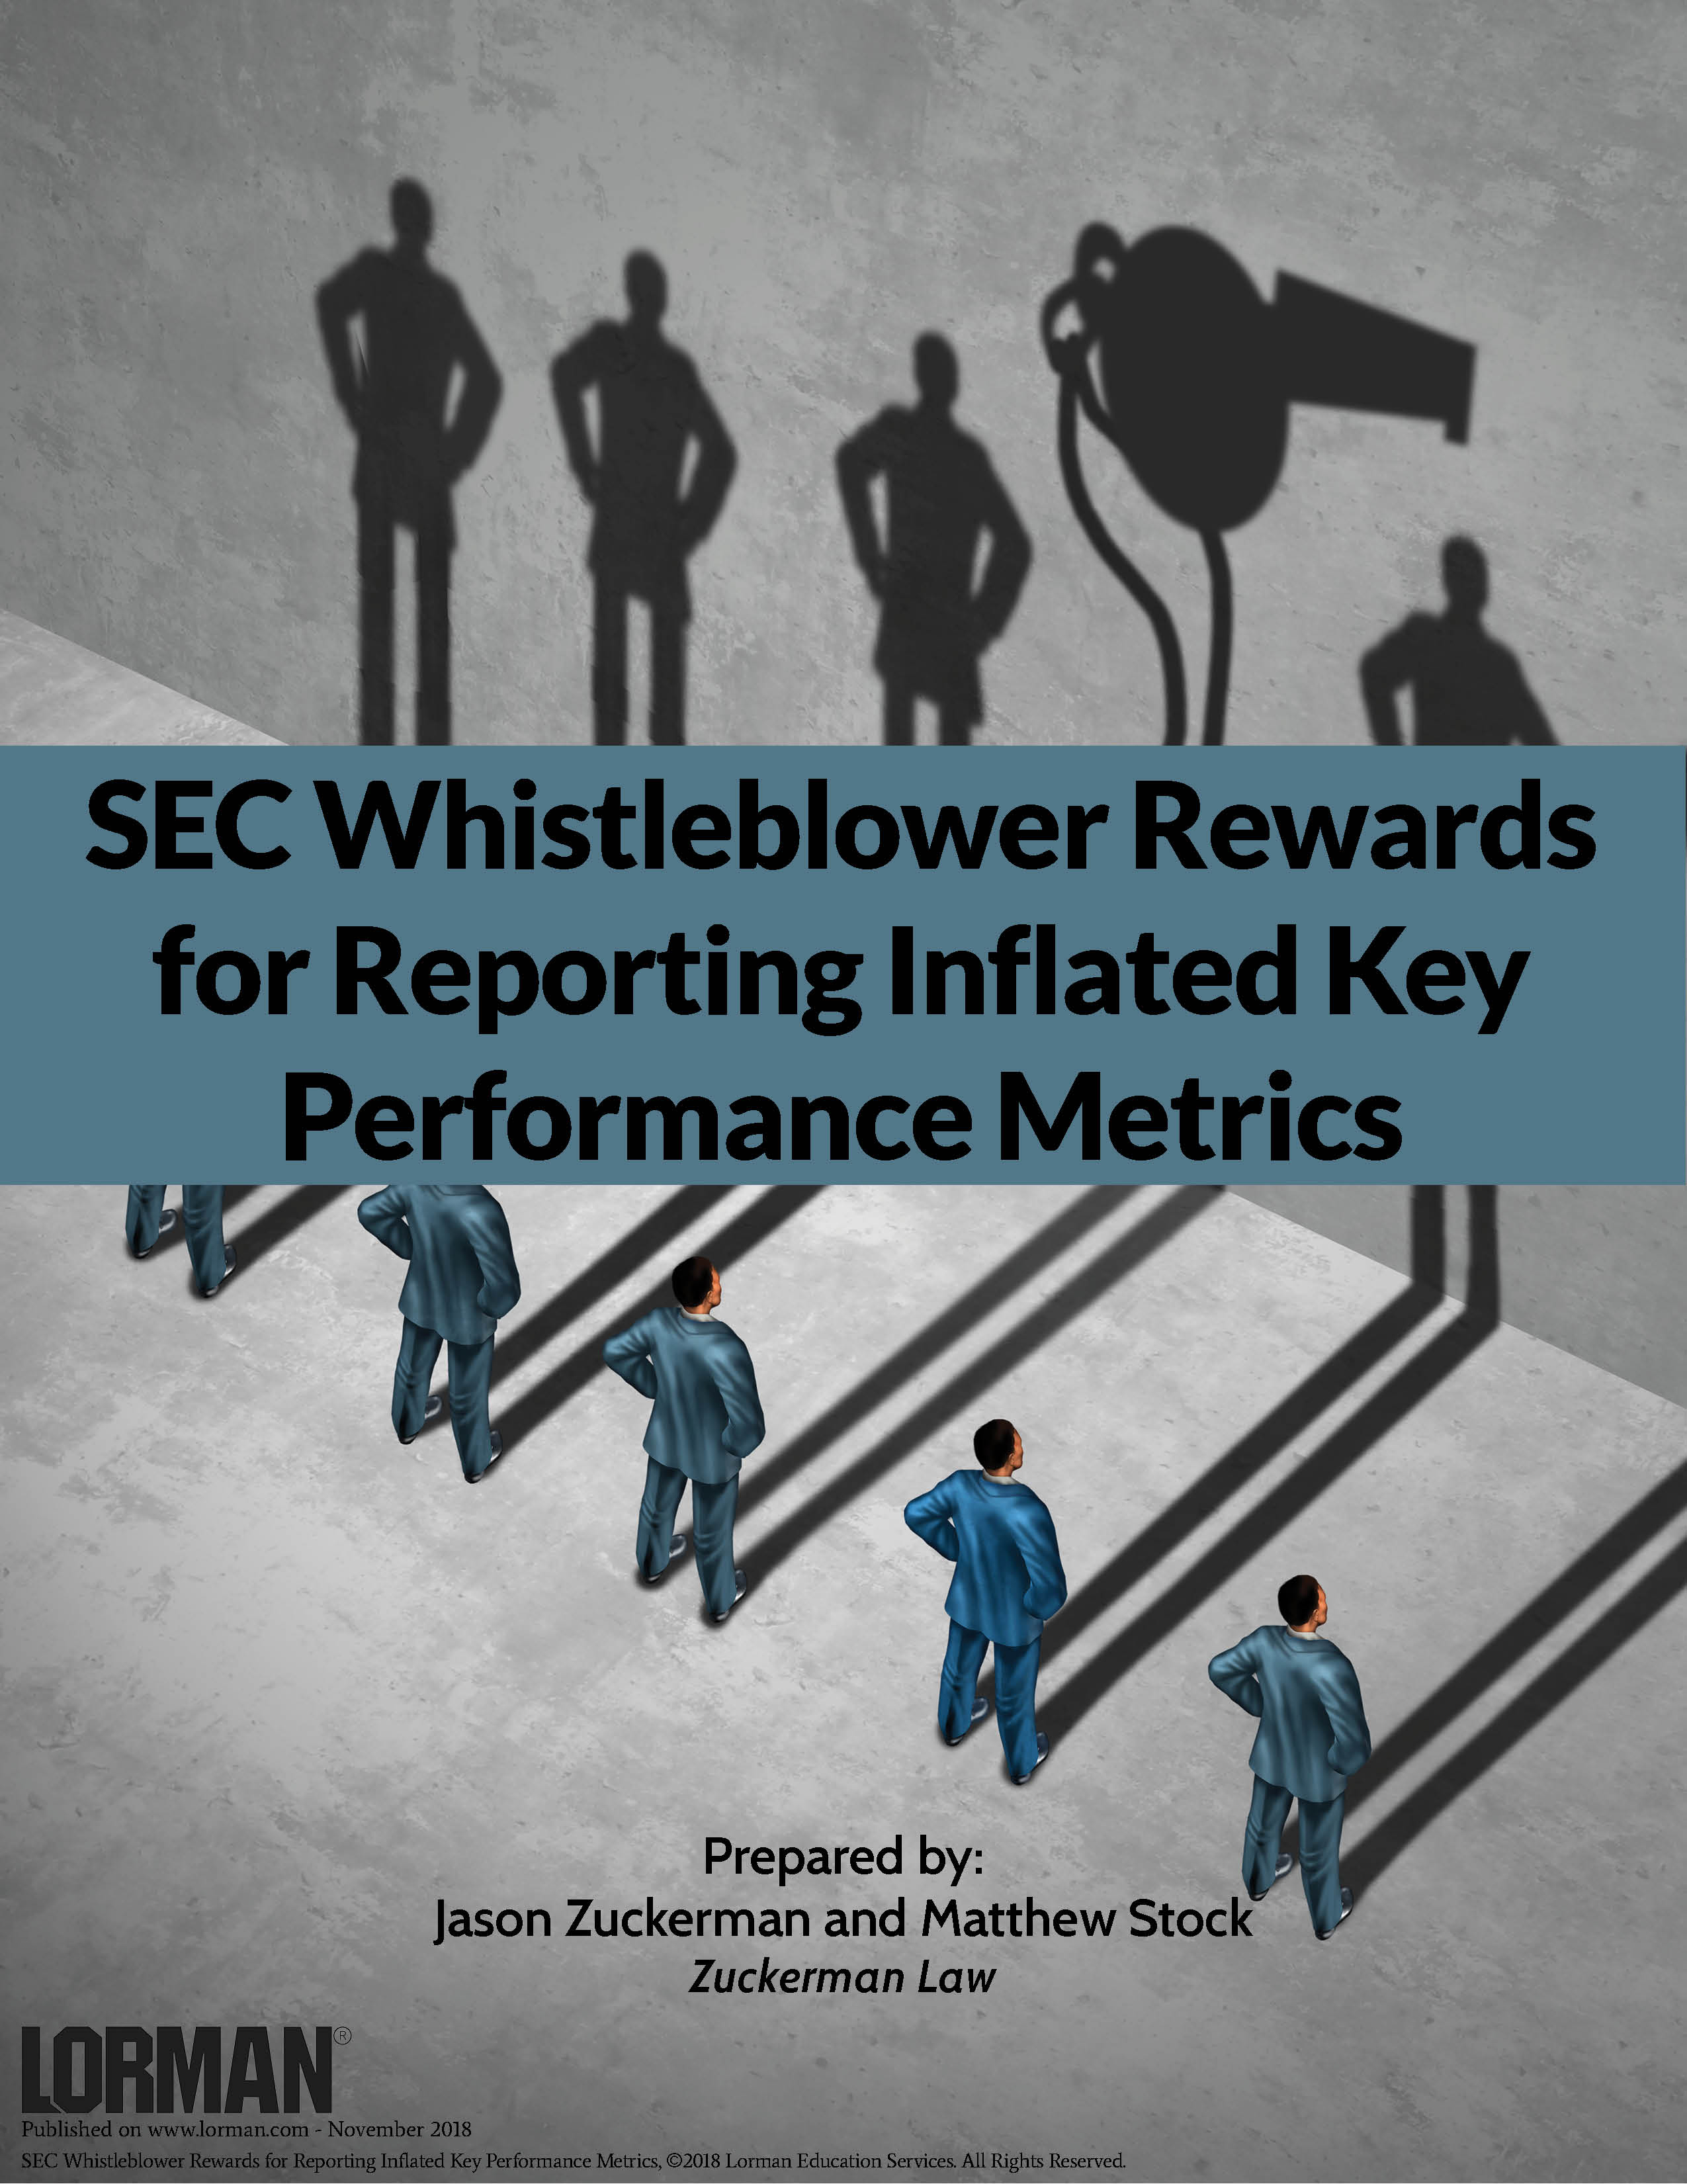 SEC Whistleblower Rewards for Reporting Inflated Key Performance Metrics